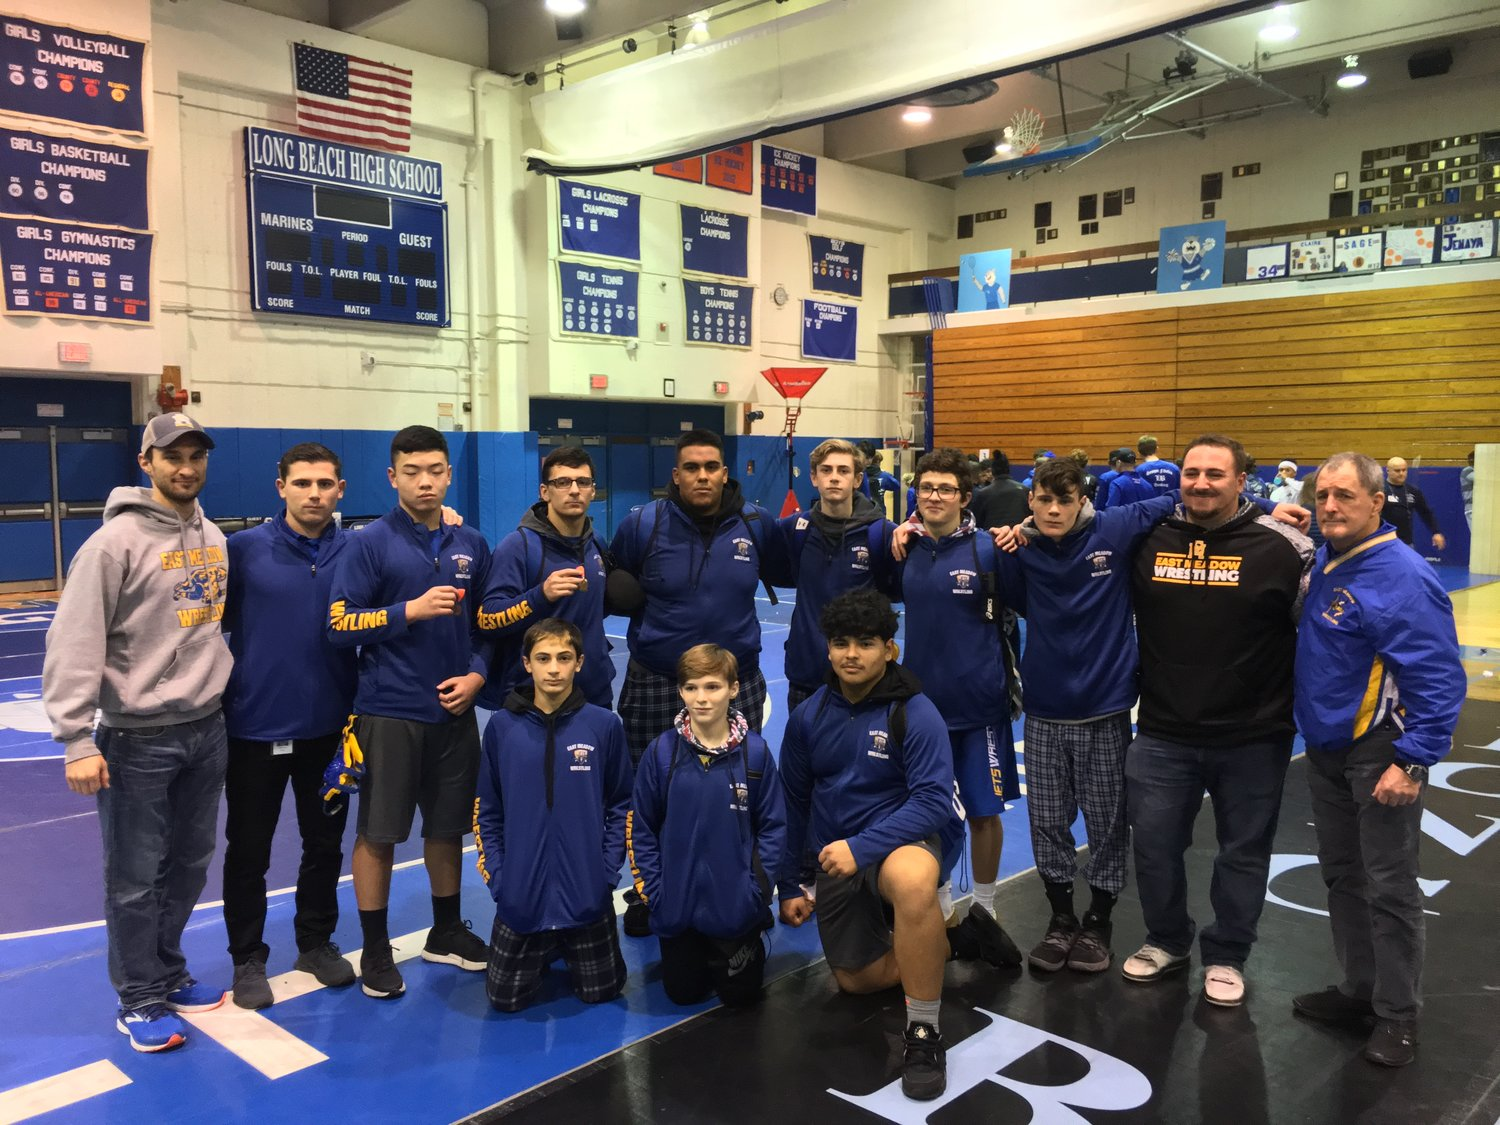 Nine of the athletes on the East Meadow Varsity Jets wrestling team will be representing their community at the 2019 Nassau County Tournament at Long Island University Post this weekend.